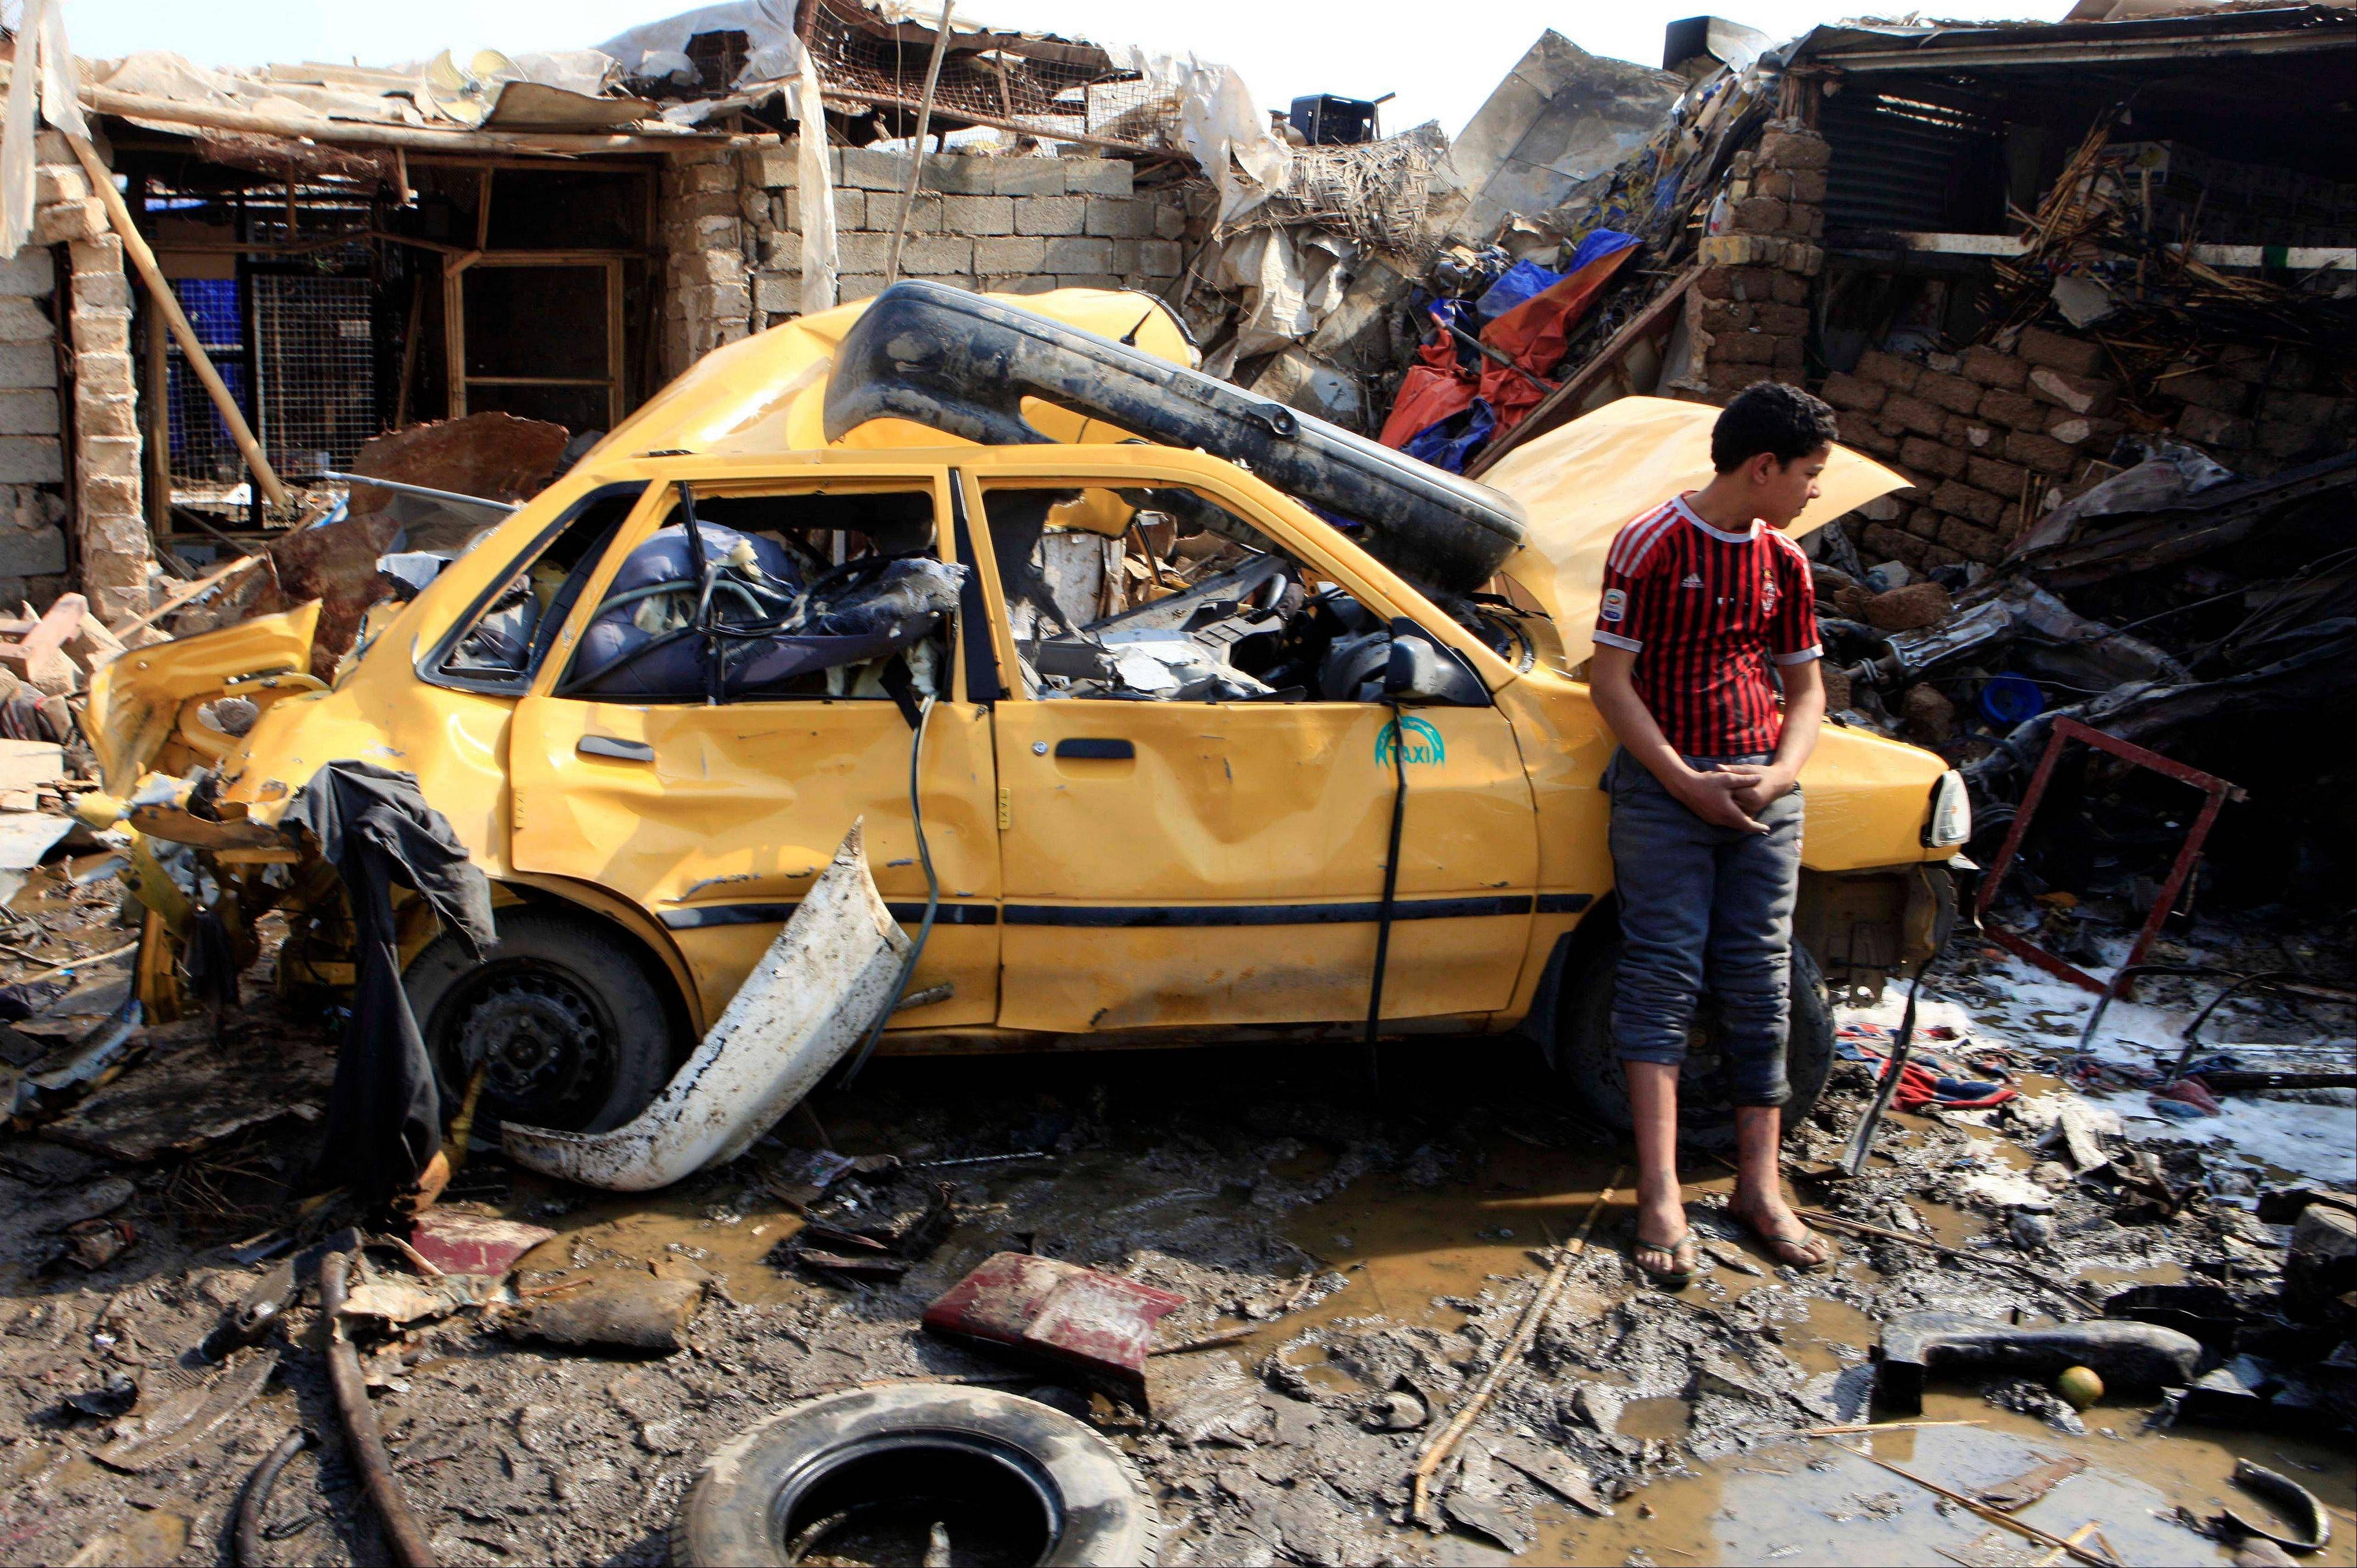 An Iraqi boy stands near a destroyed car at the scene of a car-bomb attack in Baghdad's northern Kazimyah neighborhood, Friday, Feb. 8, 2013. Car bombs struck two outdoor markets in Shiite areas of Iraq on Friday, killing and wounding scores of people, police said.